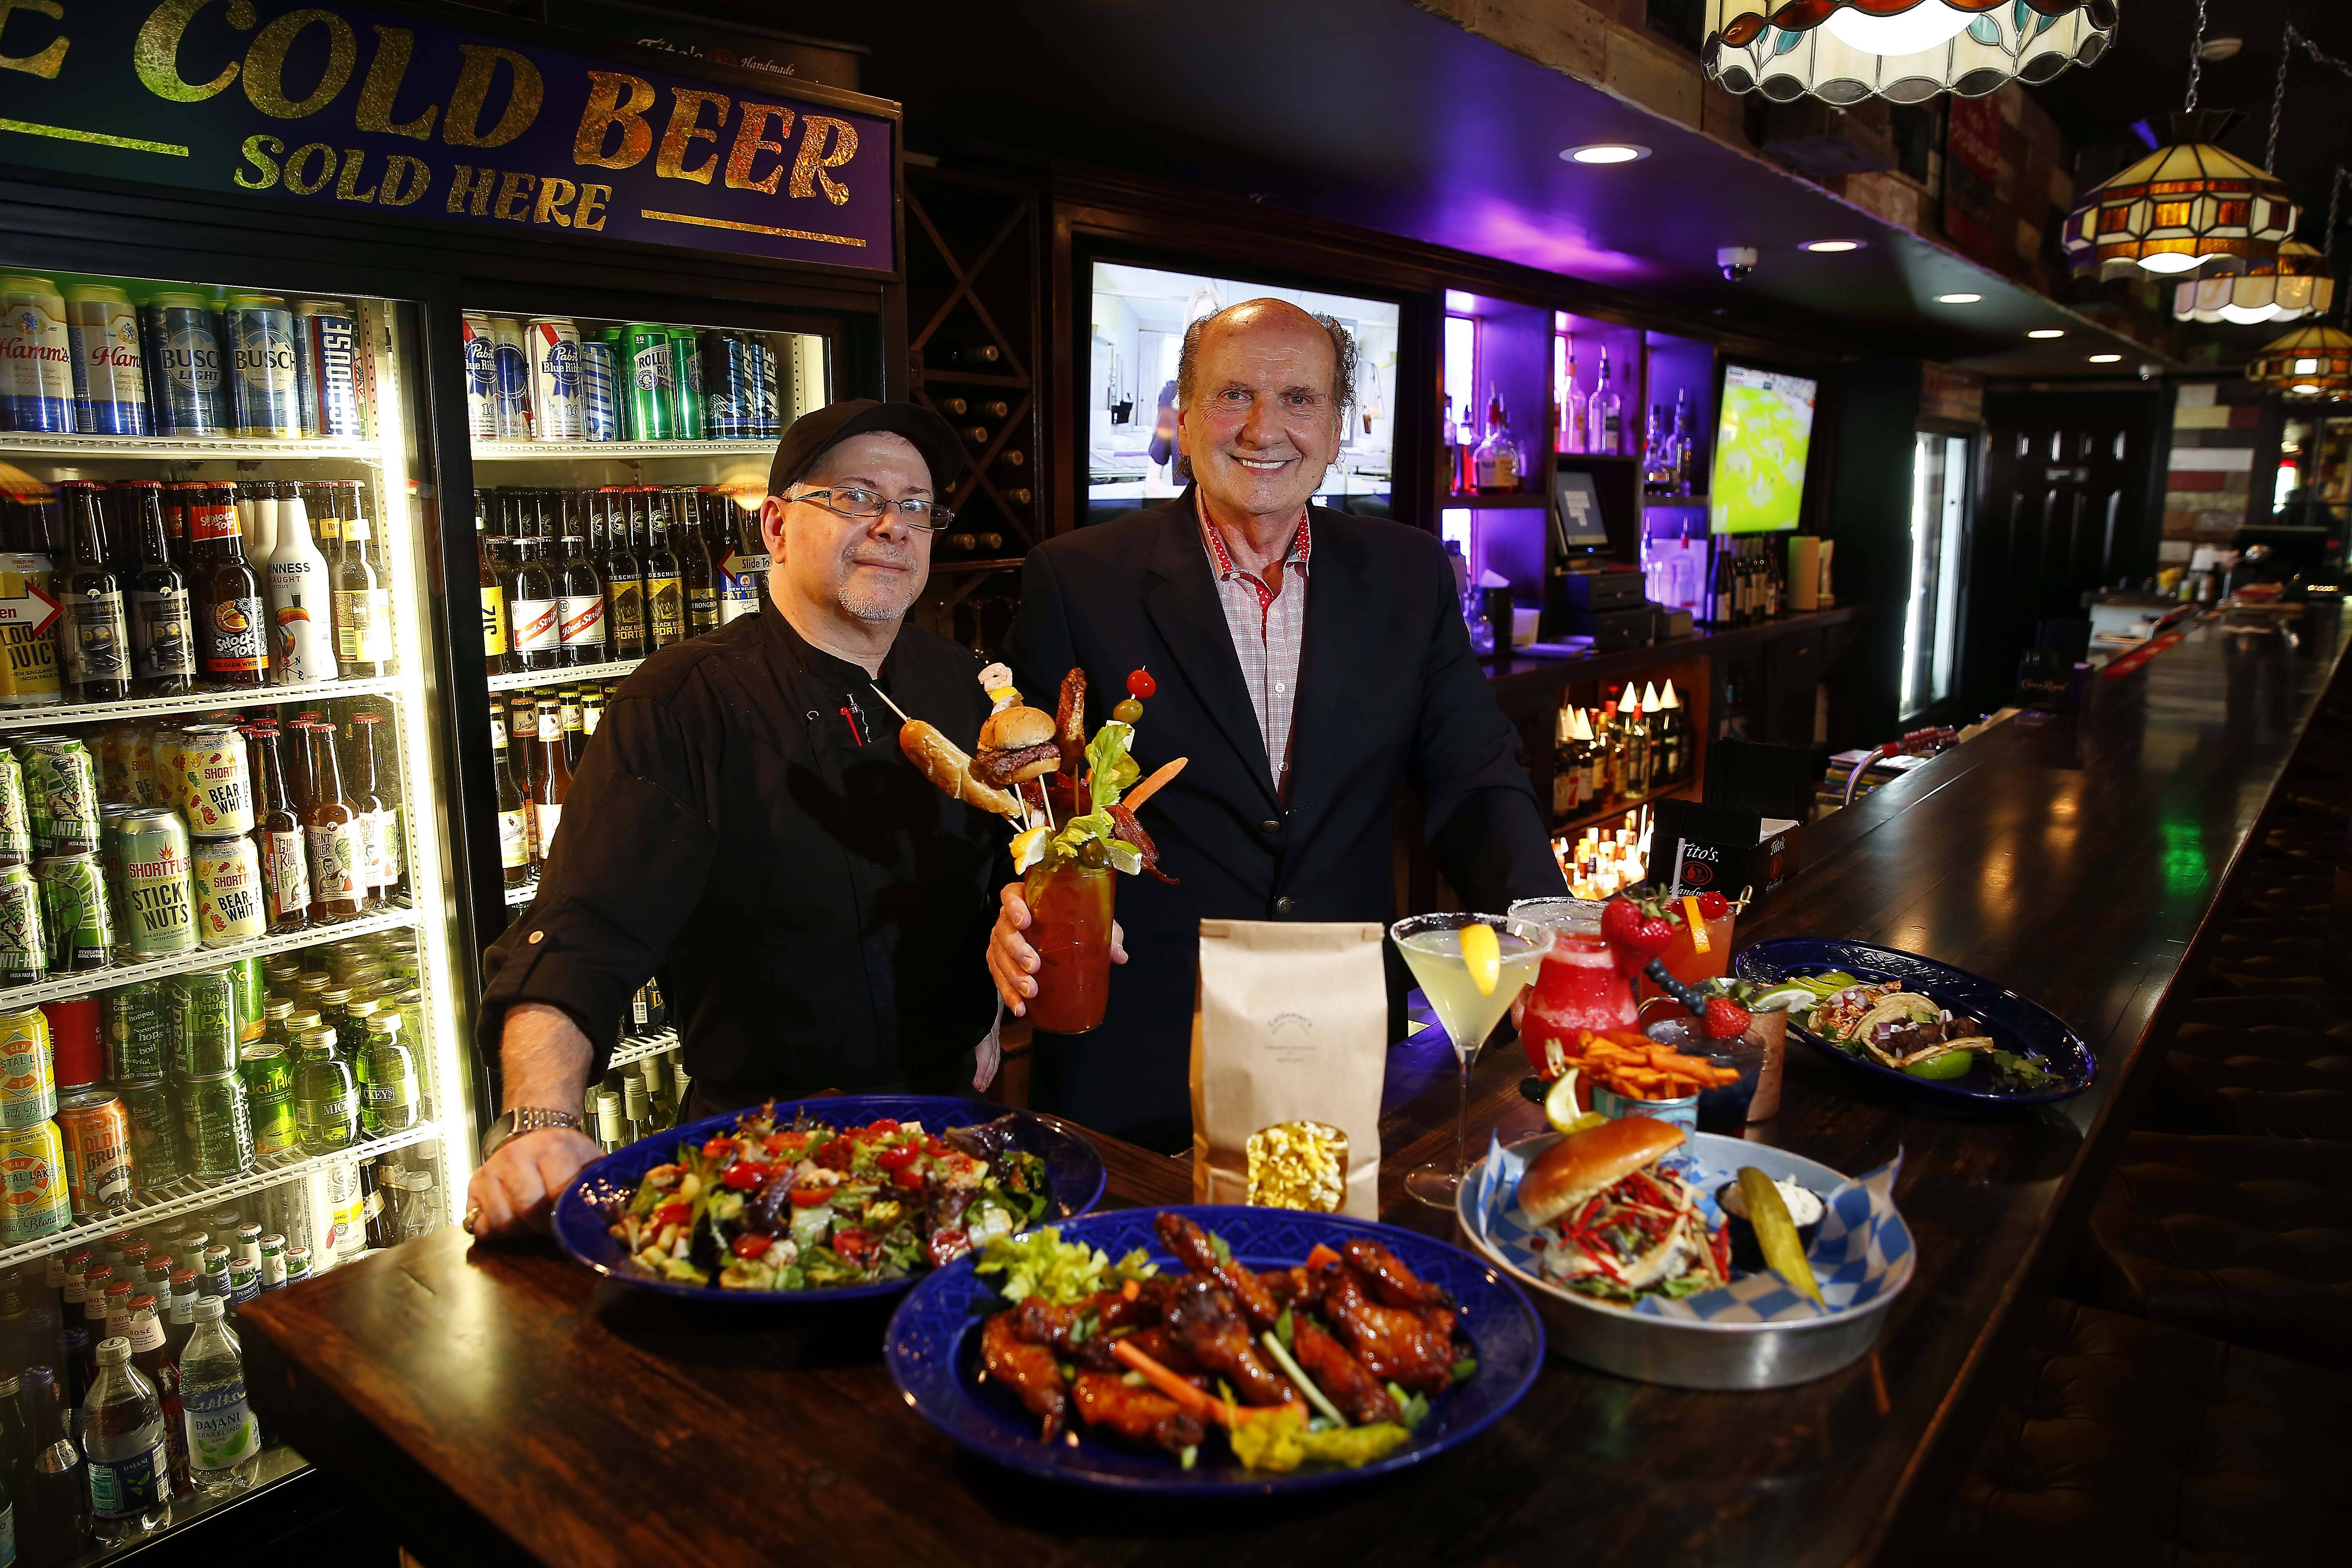 Chef Steve Loftis, left, and owner Tony Bellino show off a variety of fare at Cattleman's Burger and Brew in Algonquin.